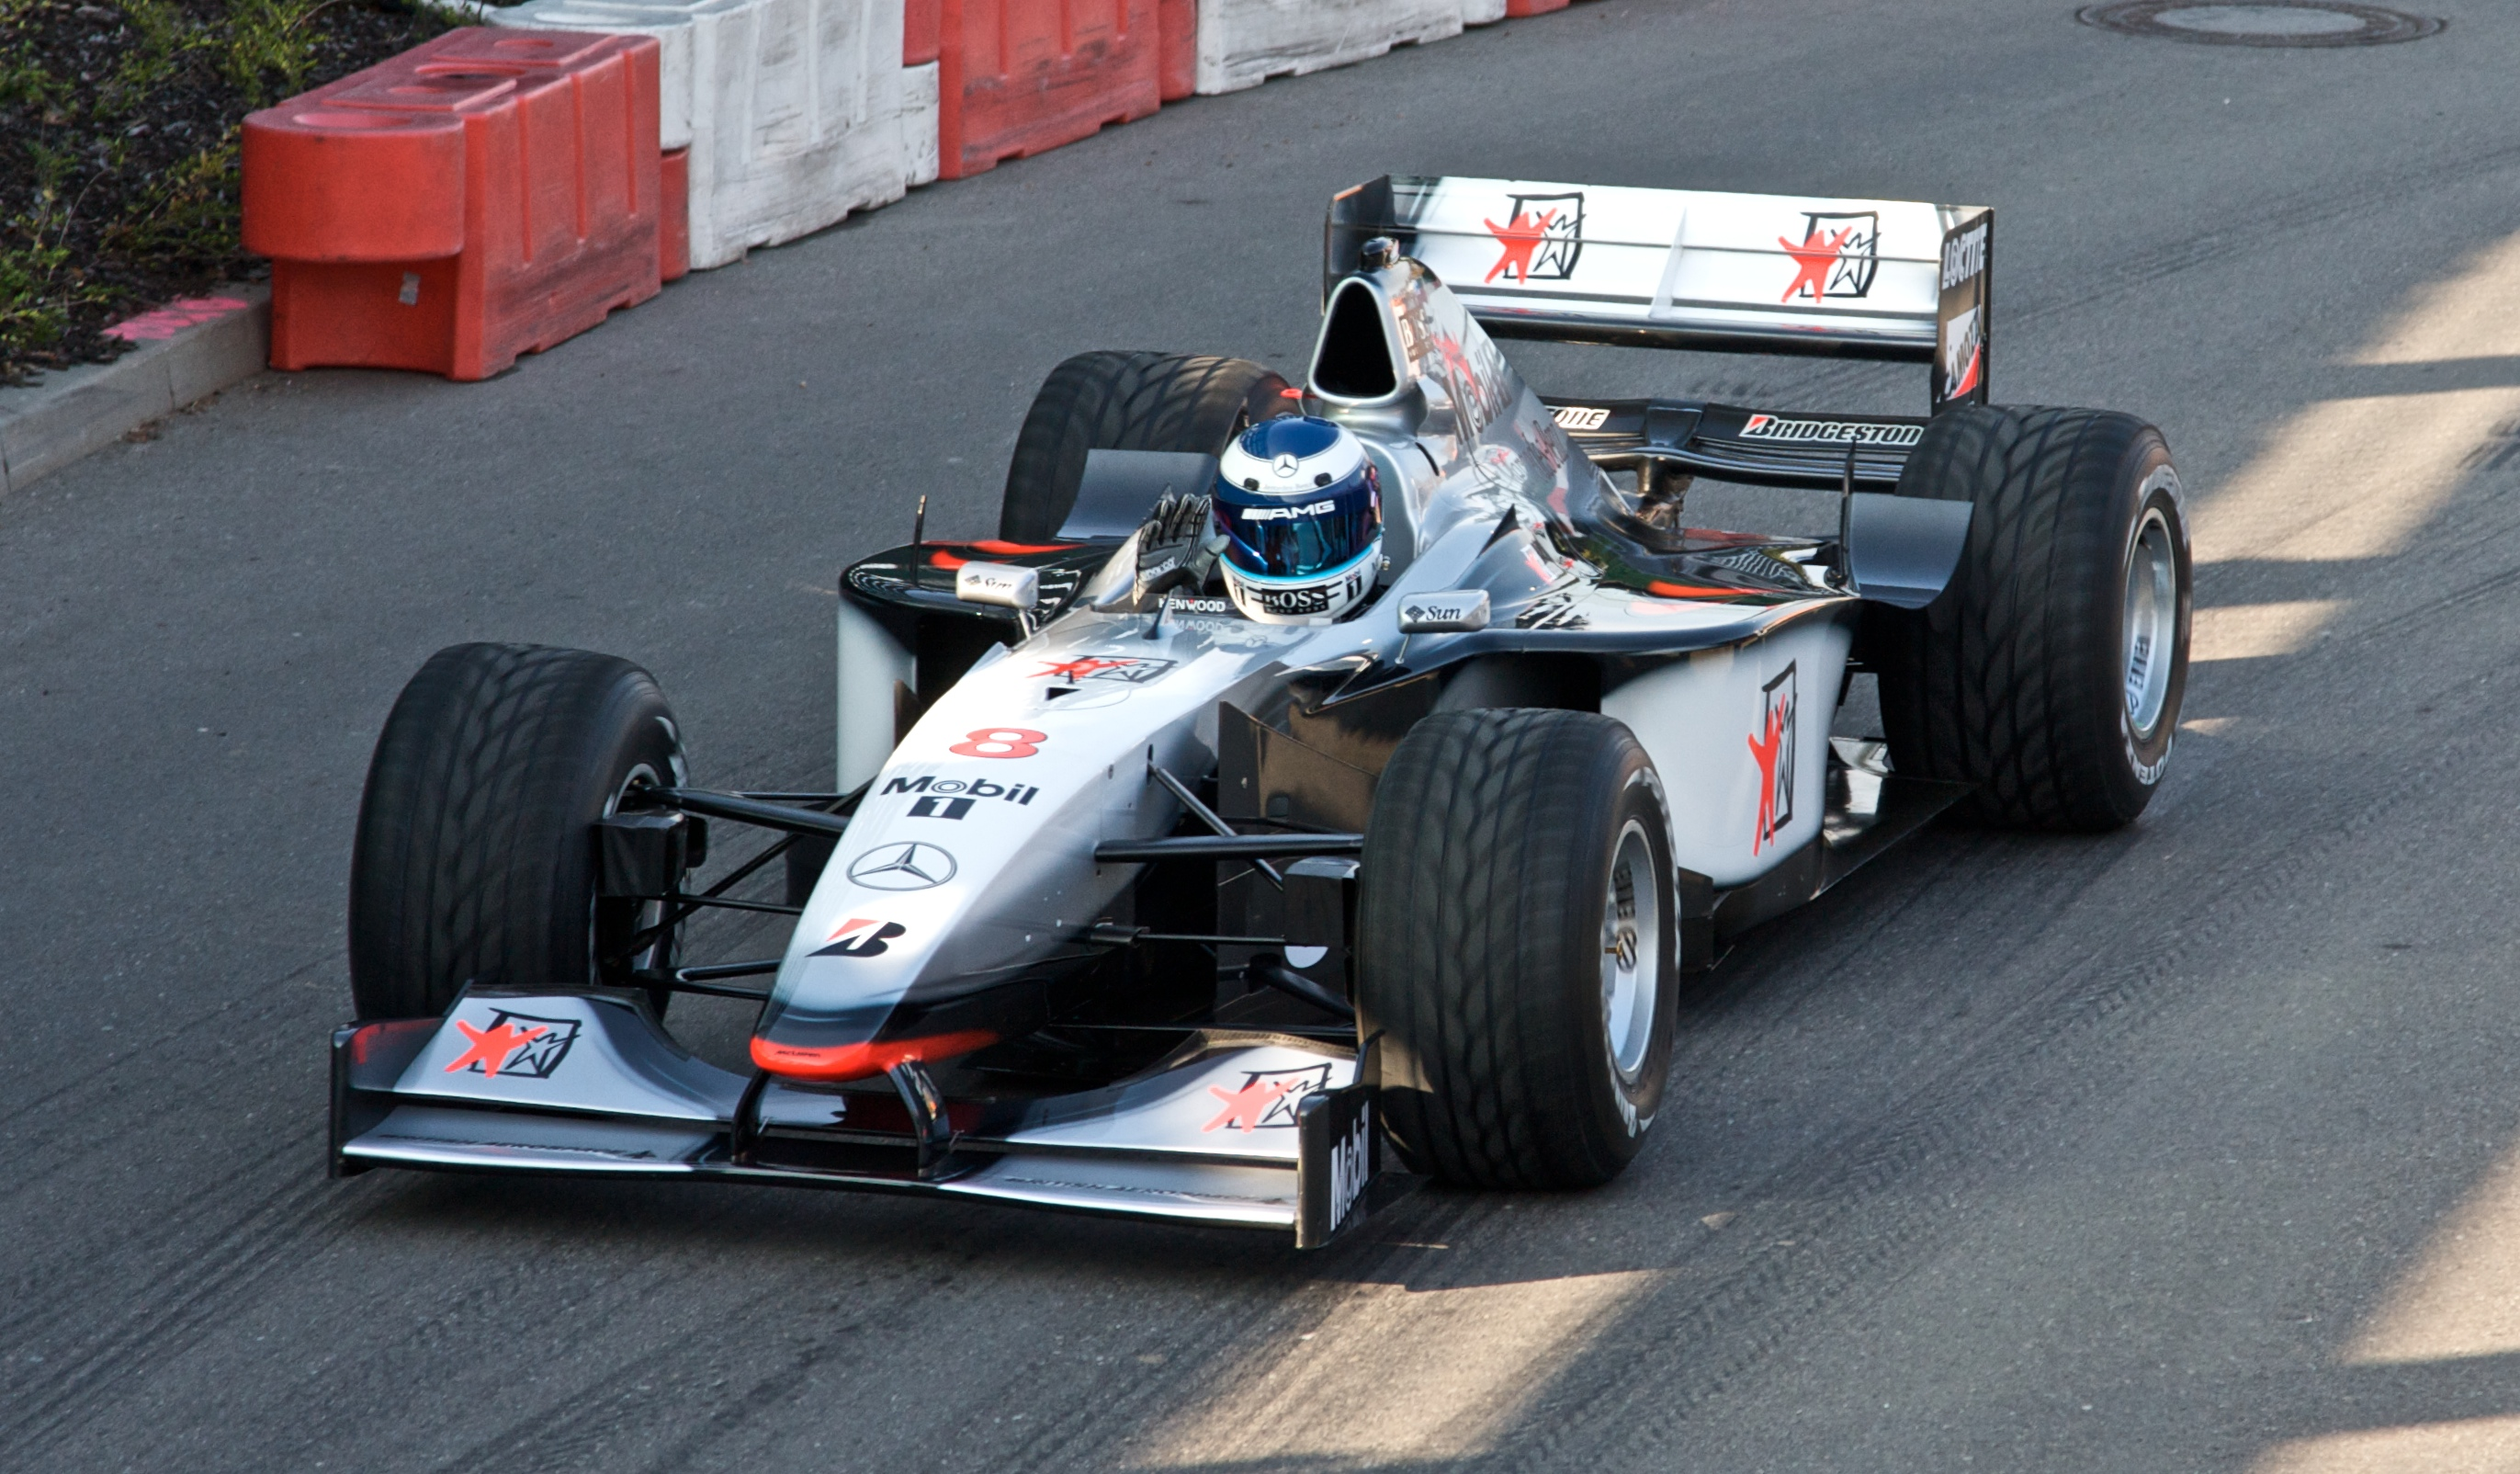 Outstanding Mclaren Formula 1 Car For Sale Gift - Classic Cars Ideas ...